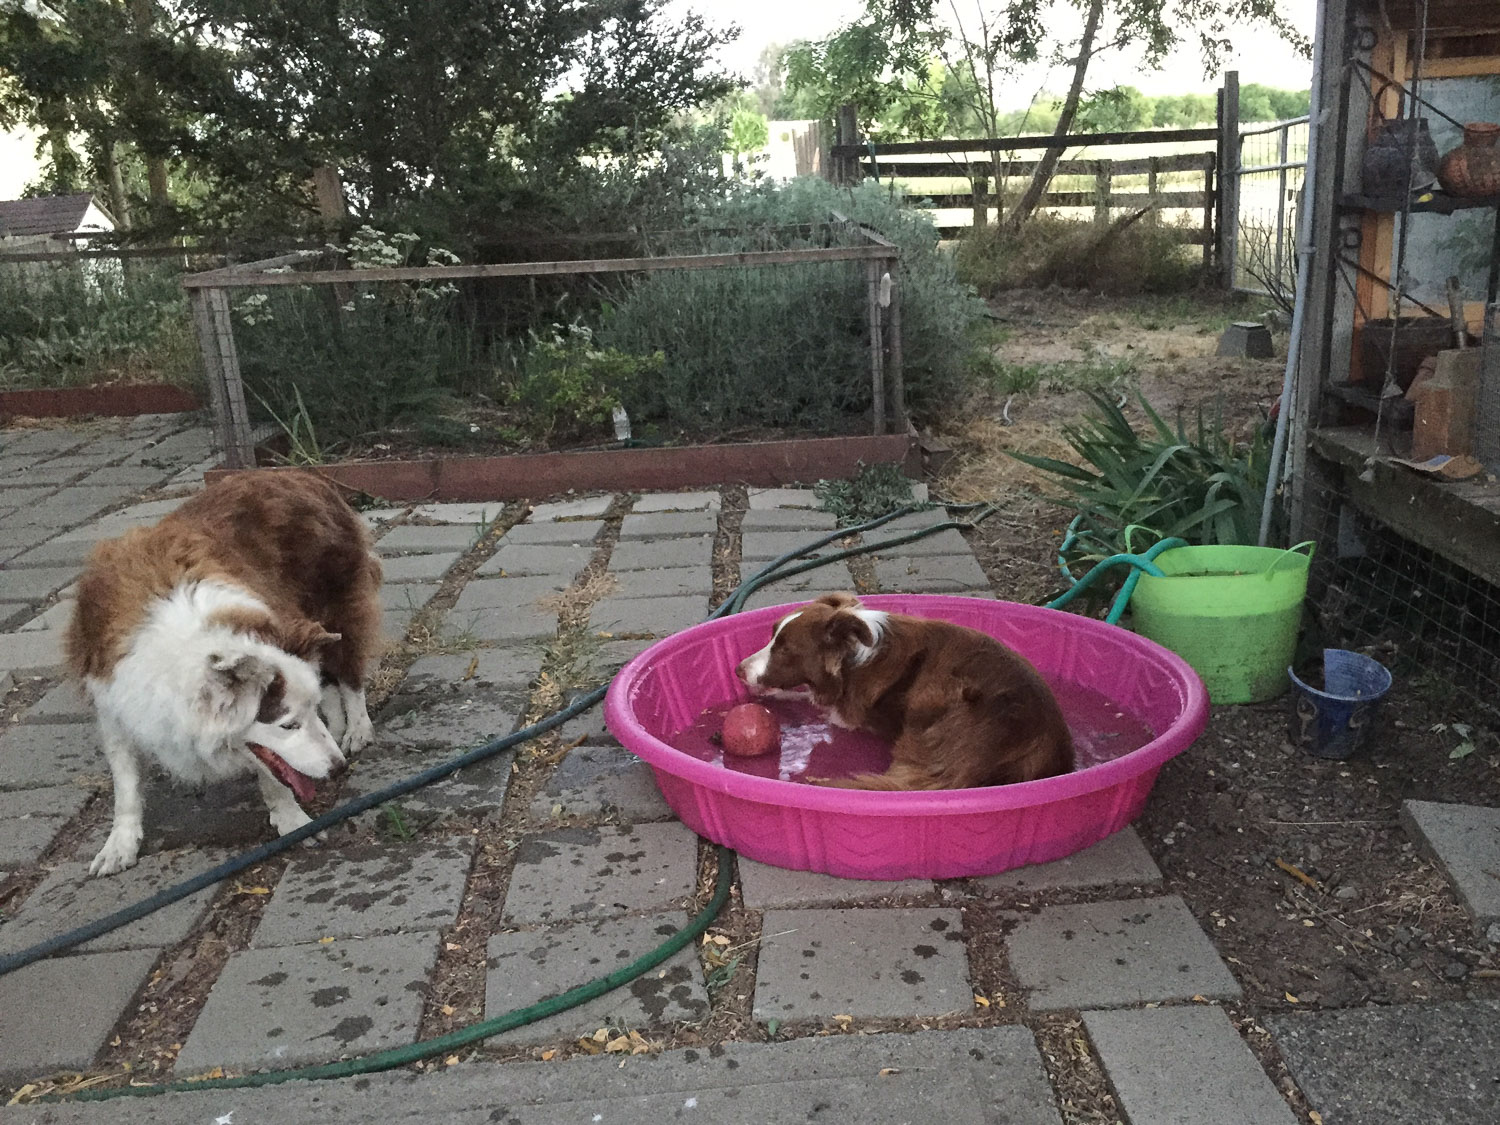 Border collies cooling off in a pool.